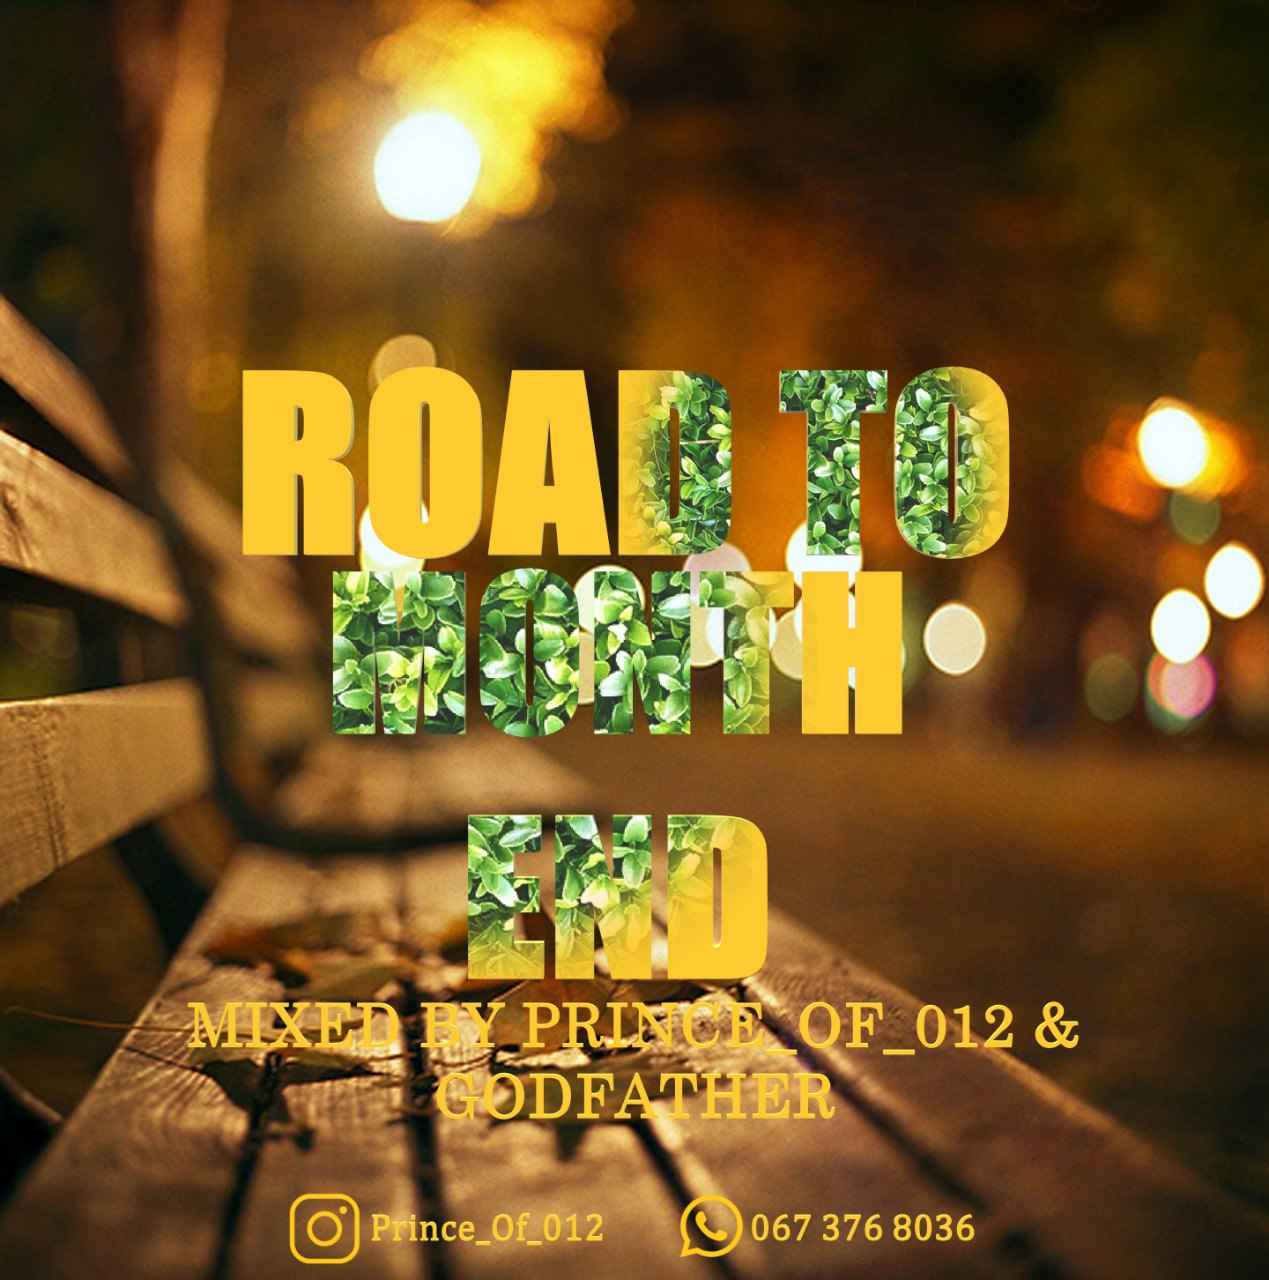 Prince of 012 & The Godfather - Road to Month End Vol 2